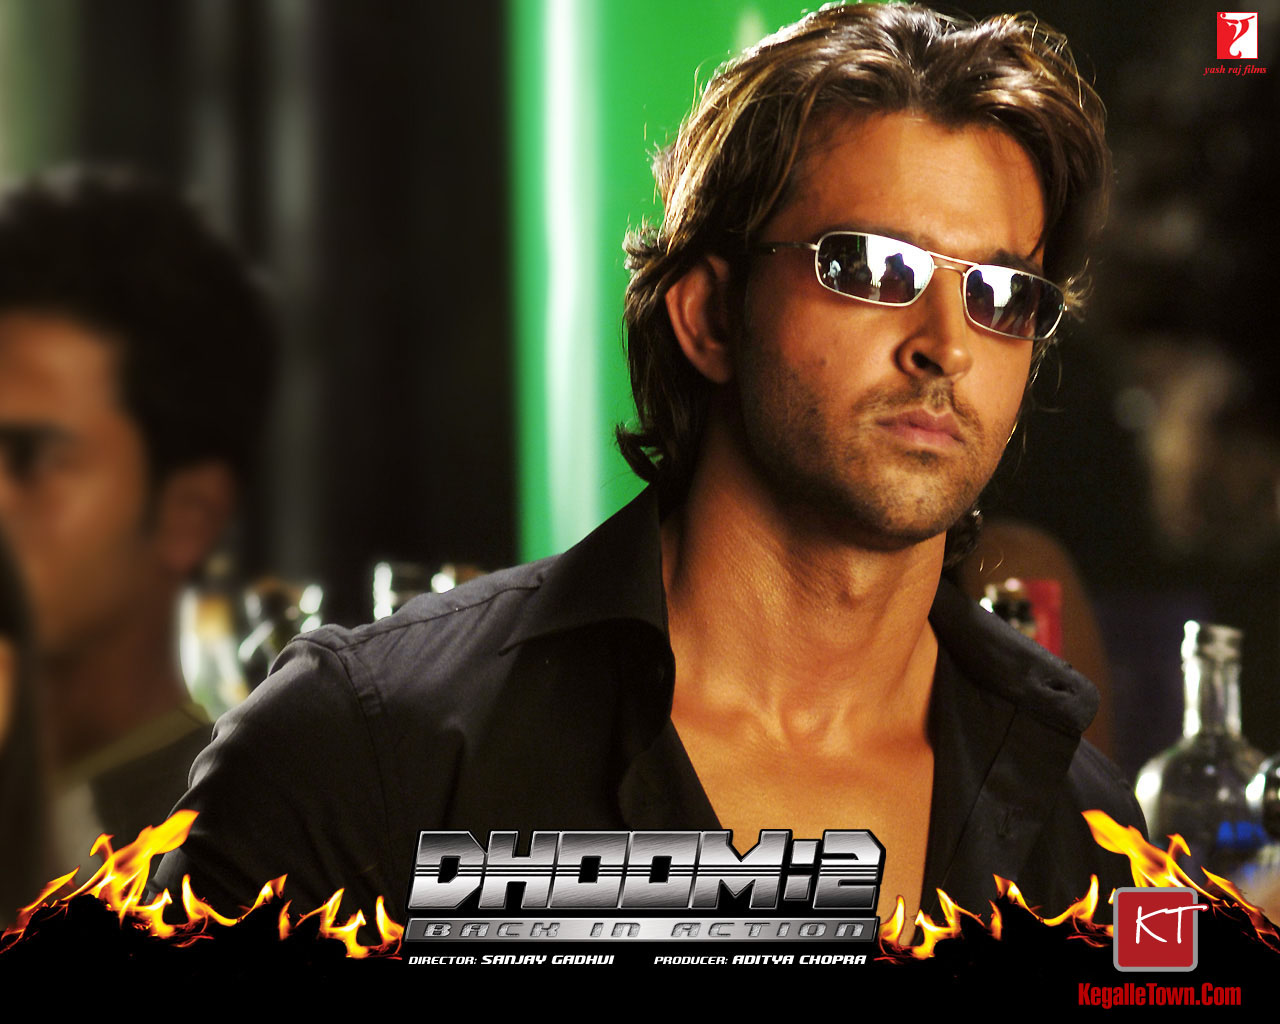 Wallpapers   Dhoom 2 Wallpapes KegalleTownCom 1280x1024